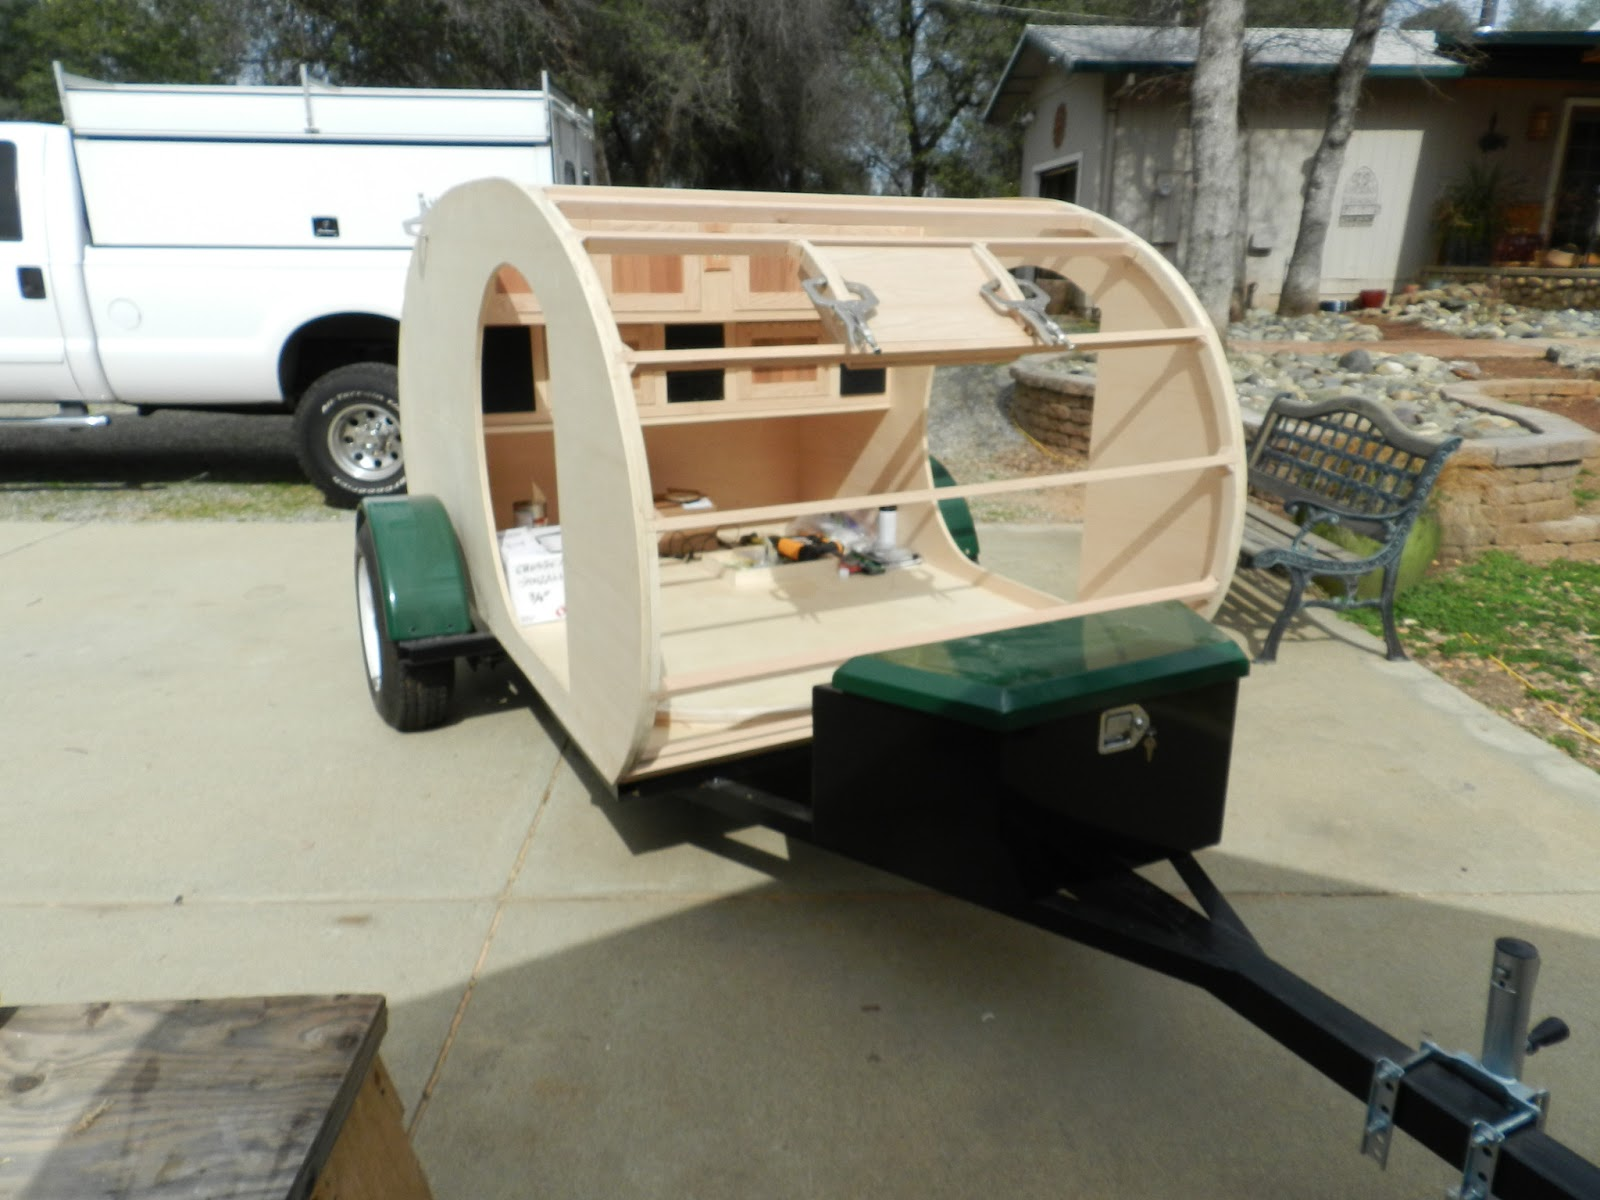 Ed S Teardrop Trailer Project Trailer Construction